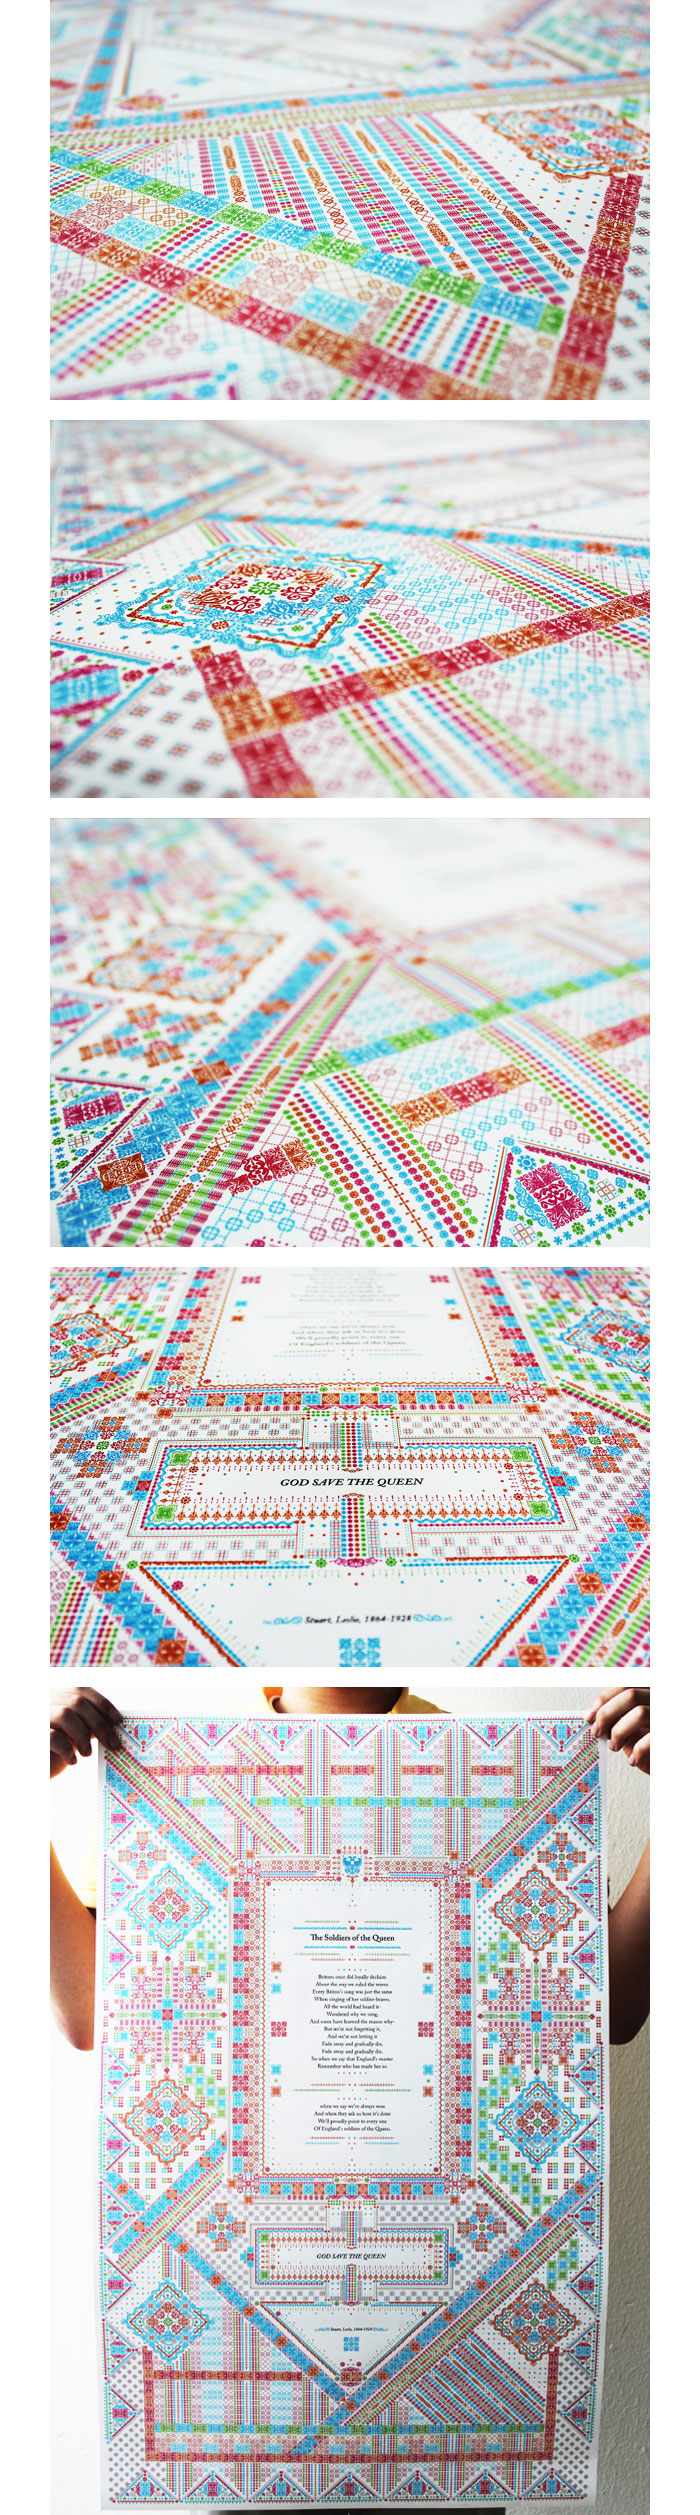 Won-kyoung Seo / Pattern & poster design